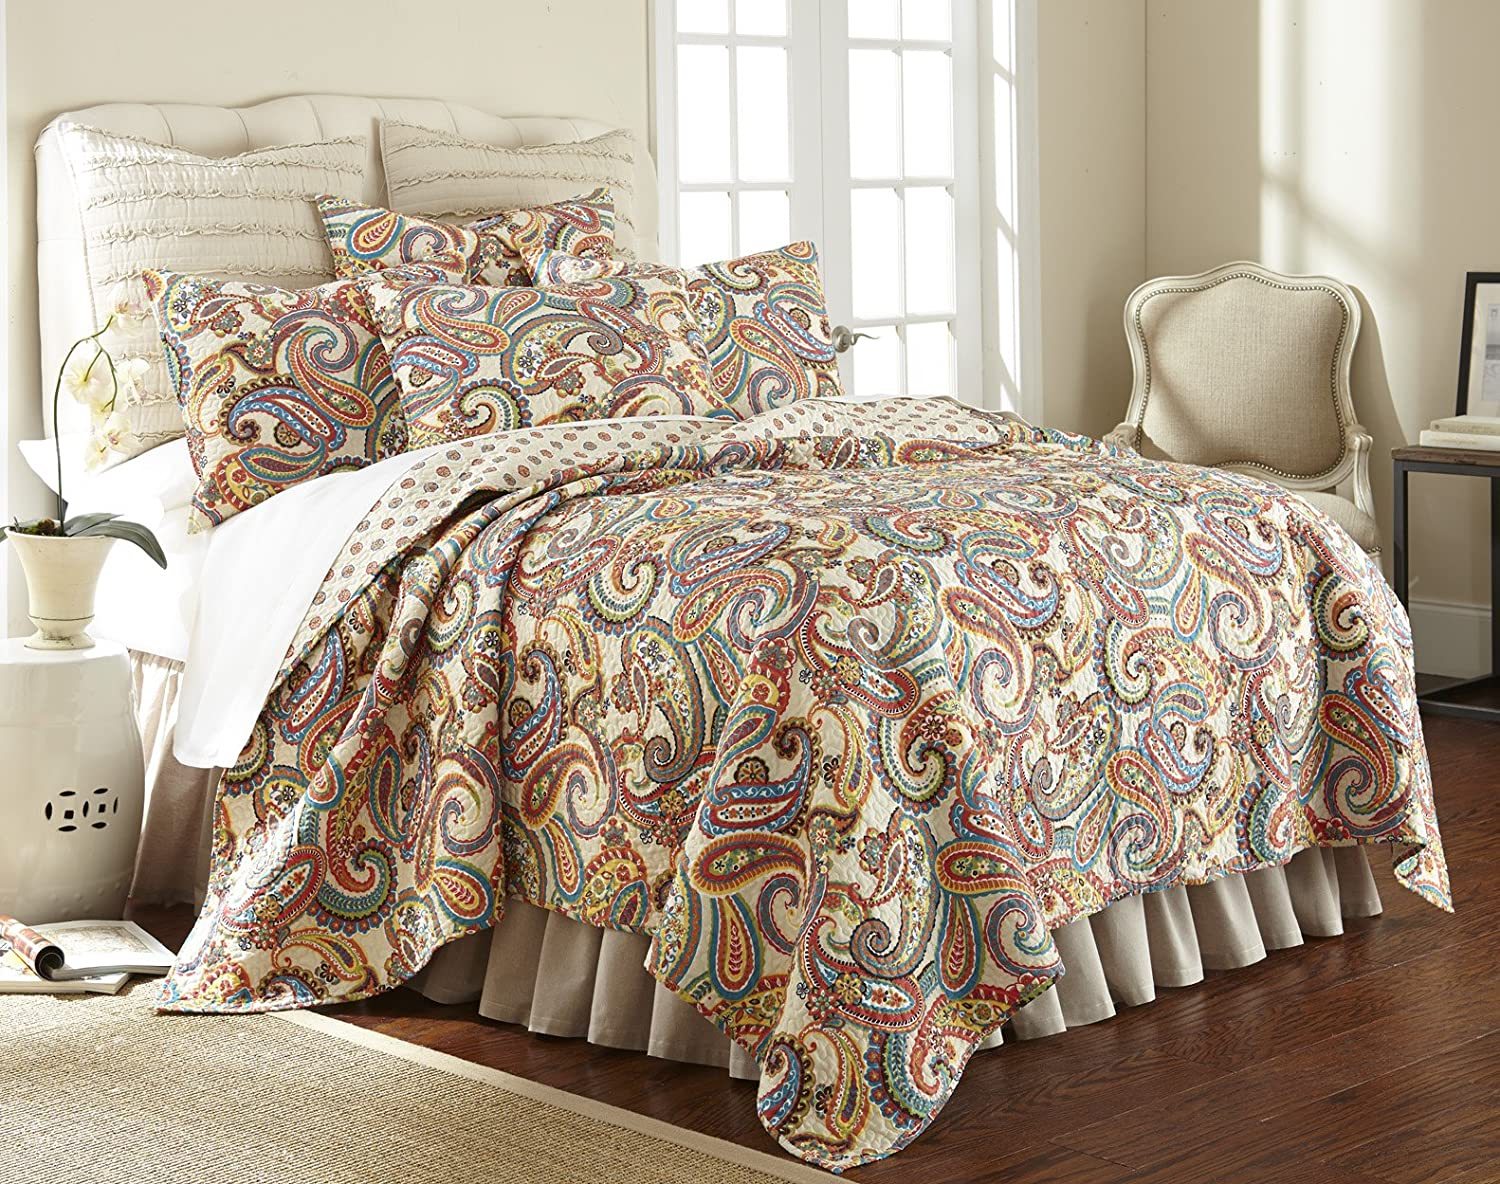 king queen chenille comforter quilted oversized is bedspread quilts quilt what the size bedspreads white